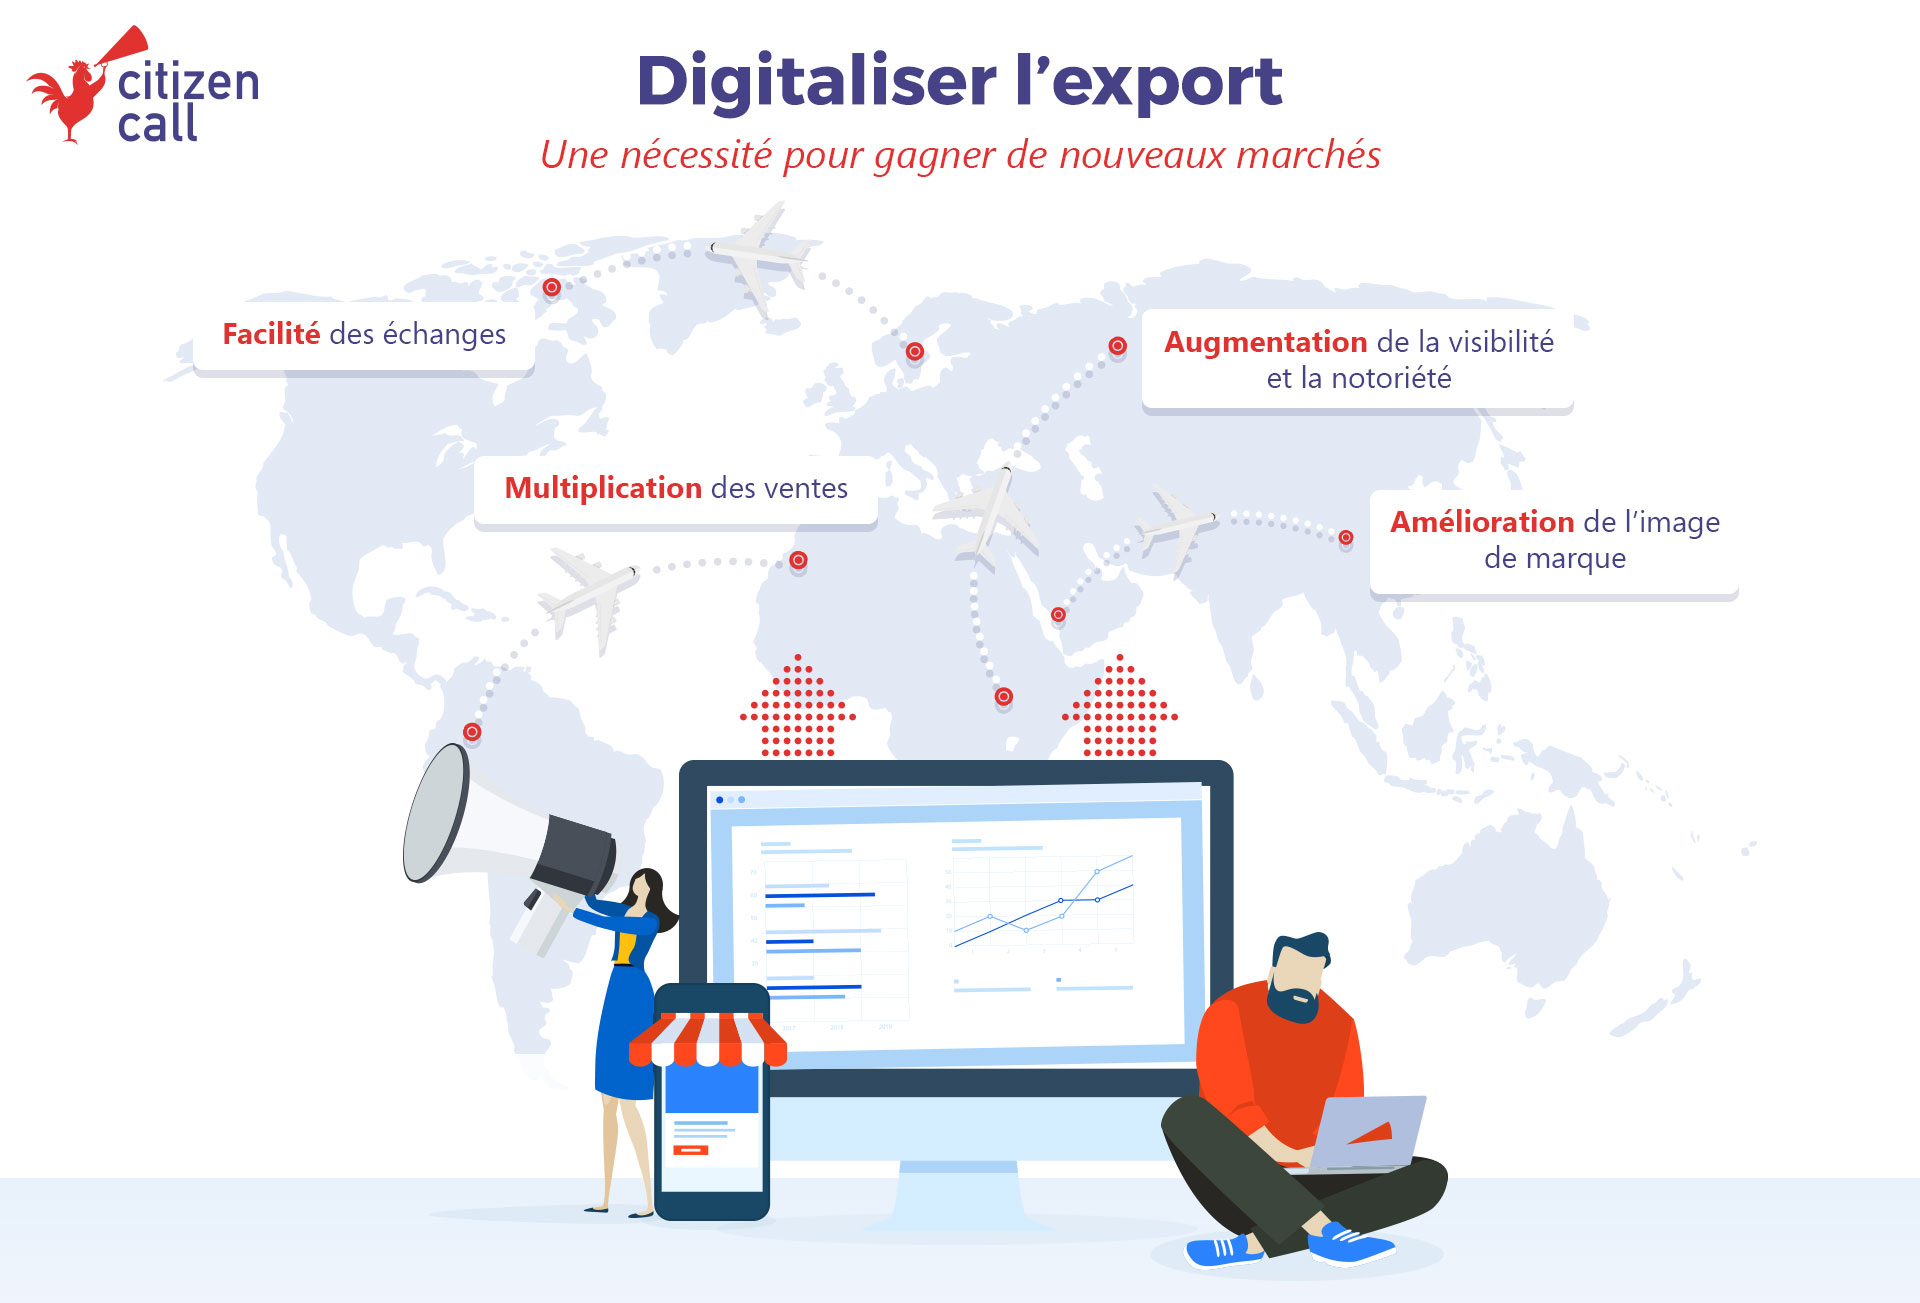 Citizen_call_infographie_Digitaliser_Export